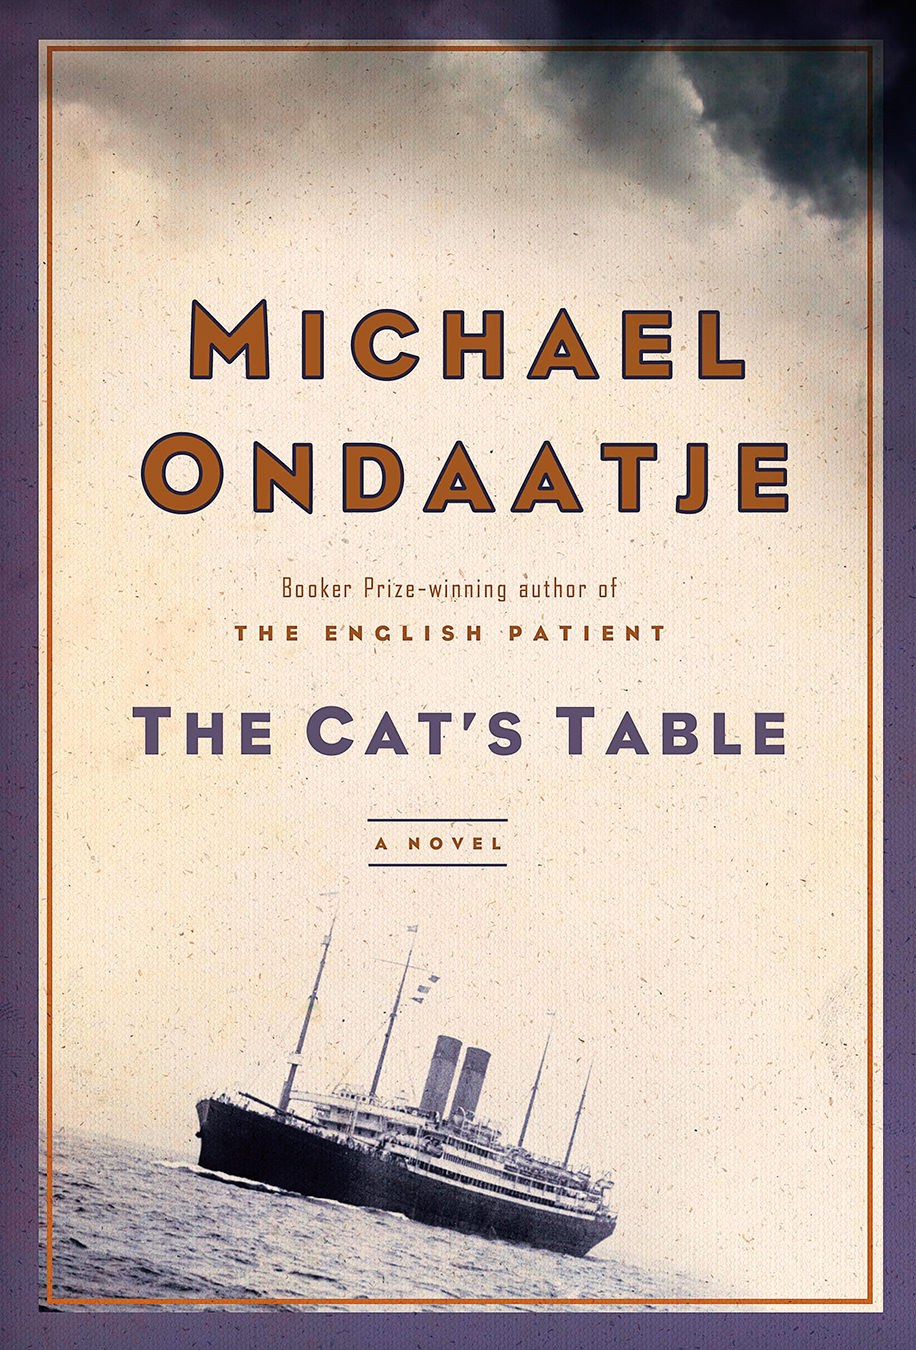 Michael Ondaatje : express yourself beautifully